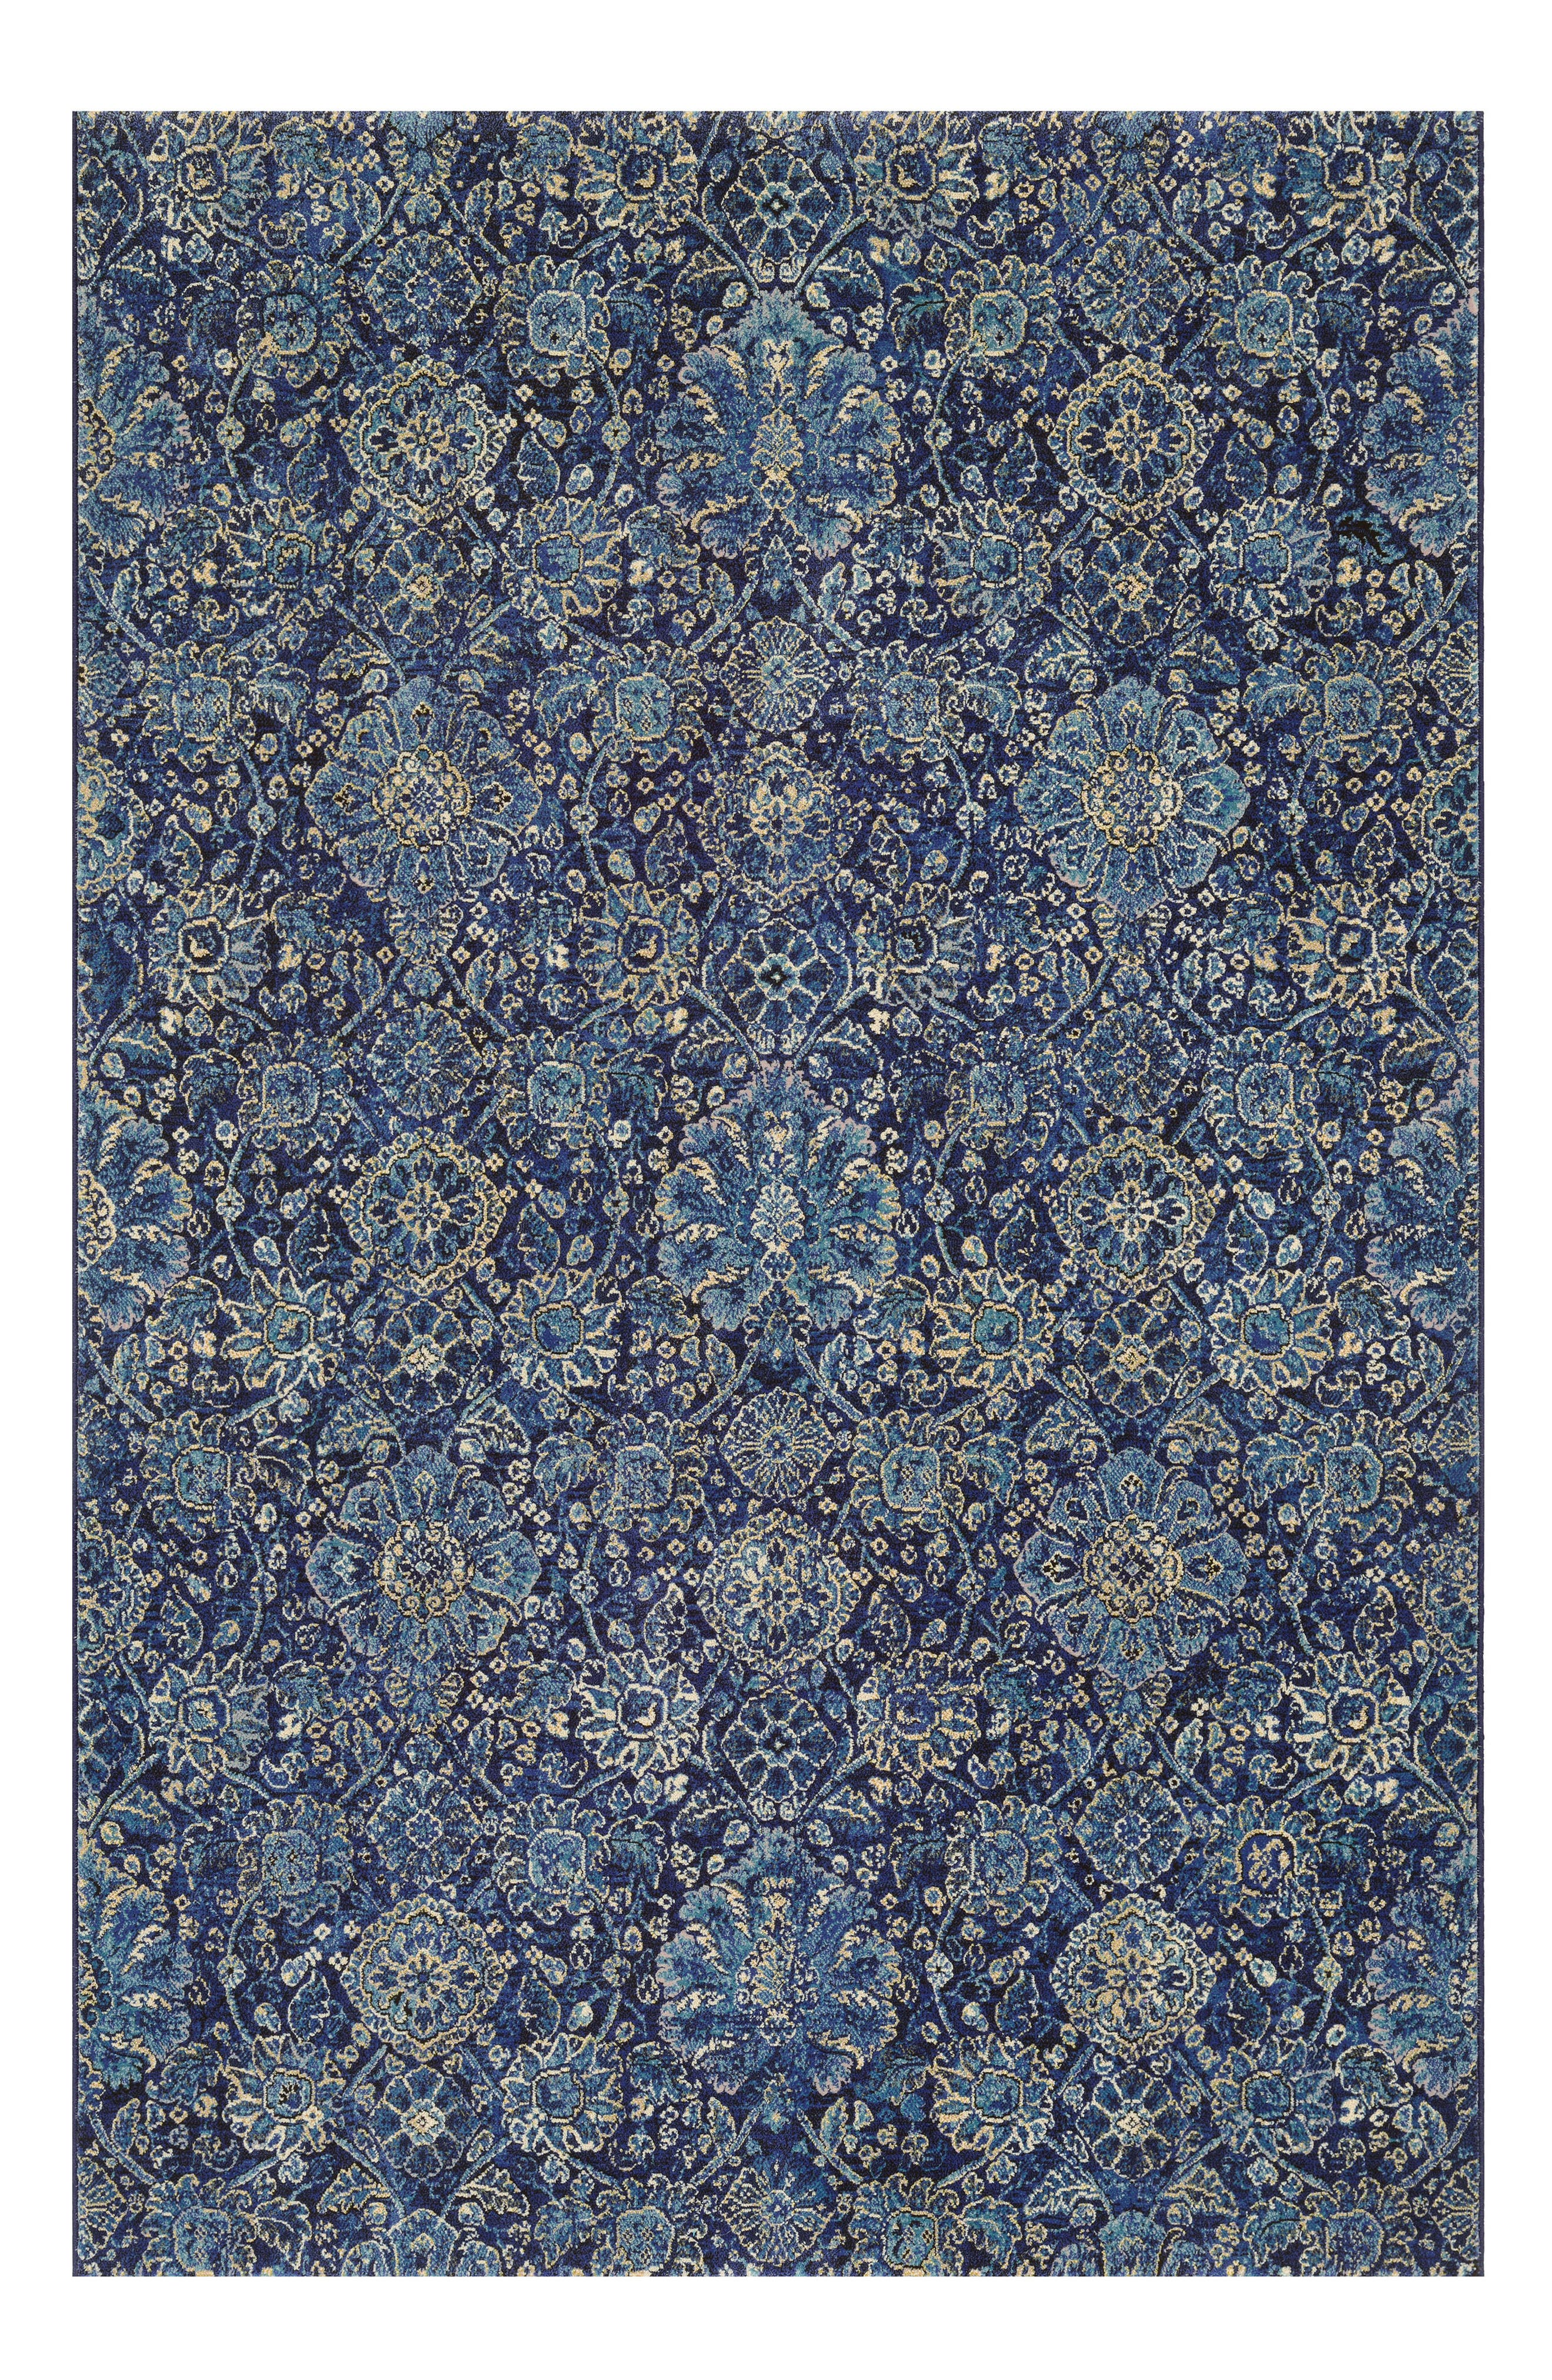 A garden of intricate blooms washes across a versatile rug power-loomed in fade-resistant polypropylene, making it great for high-traffic areas both inside and outside. Style Name: Couristan Winslet Indoor/outdoor Rug. Style Number: 5366836. Available in stores.